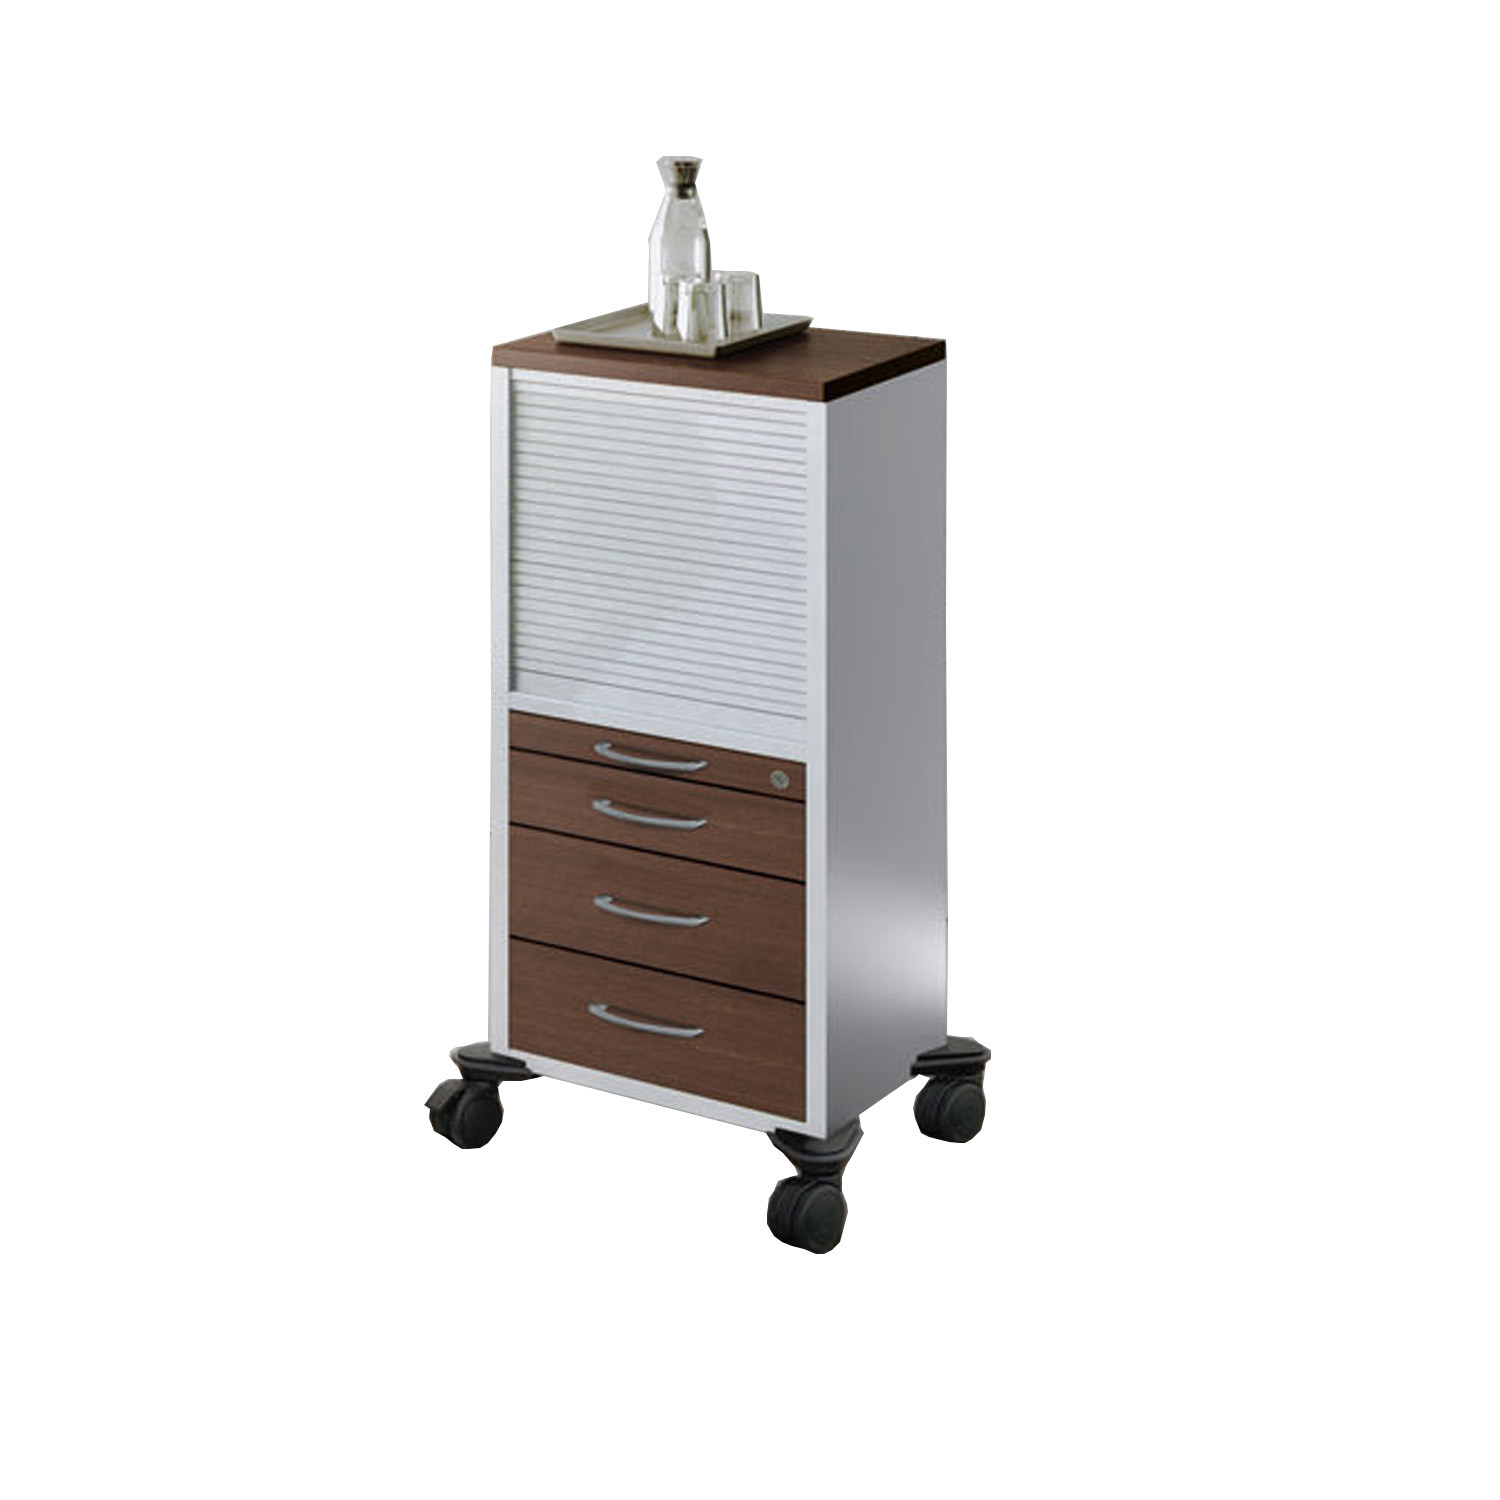 Pontis Mobile Pedestal Unit